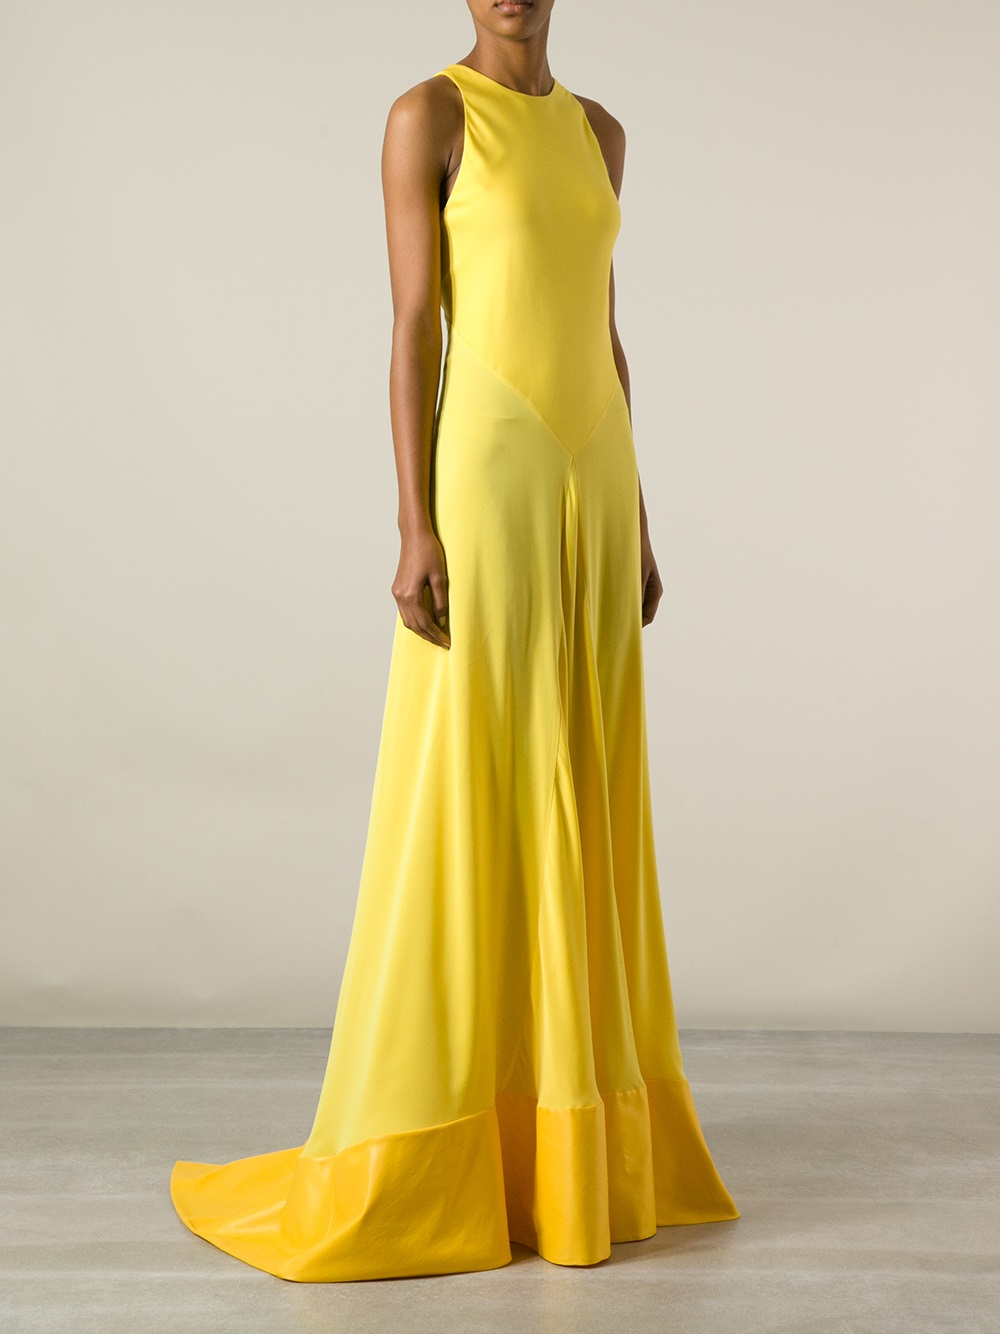 Lyst - Vionnet Sleeveless Flowing Gown in Yellow